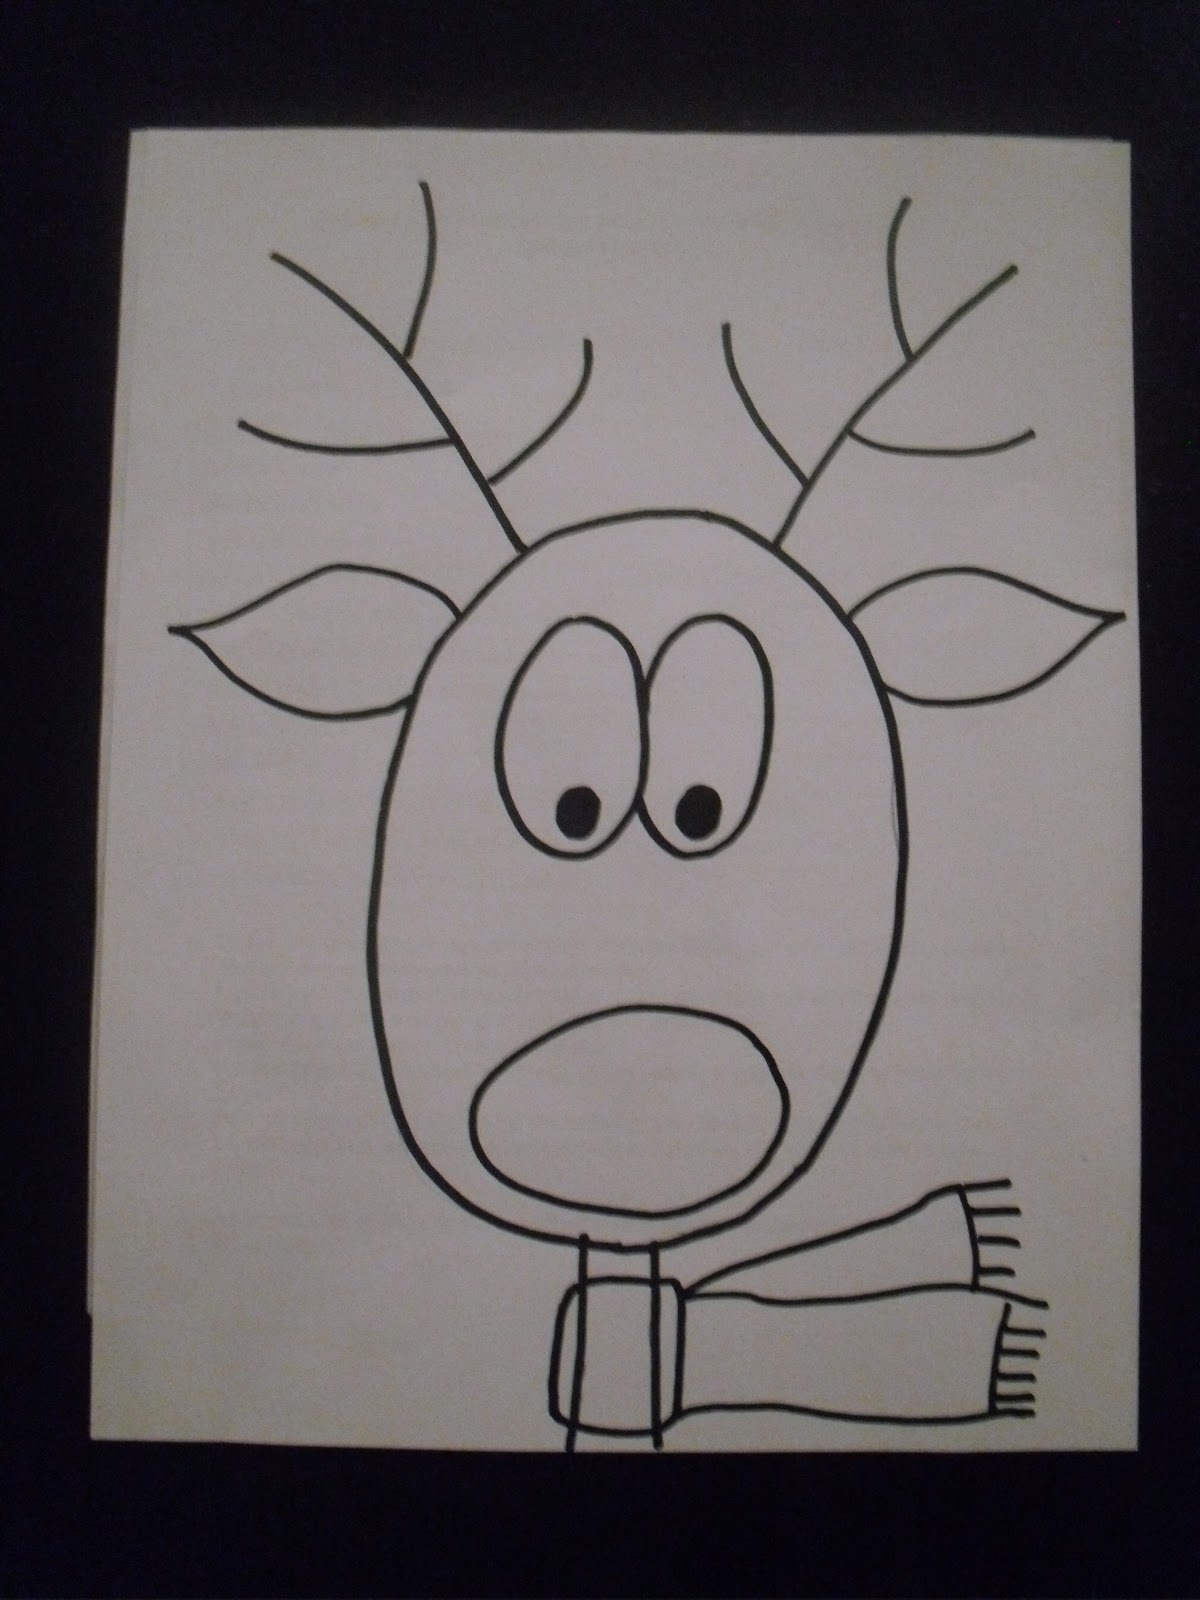 Add dots for the eyes and finish the antlers.